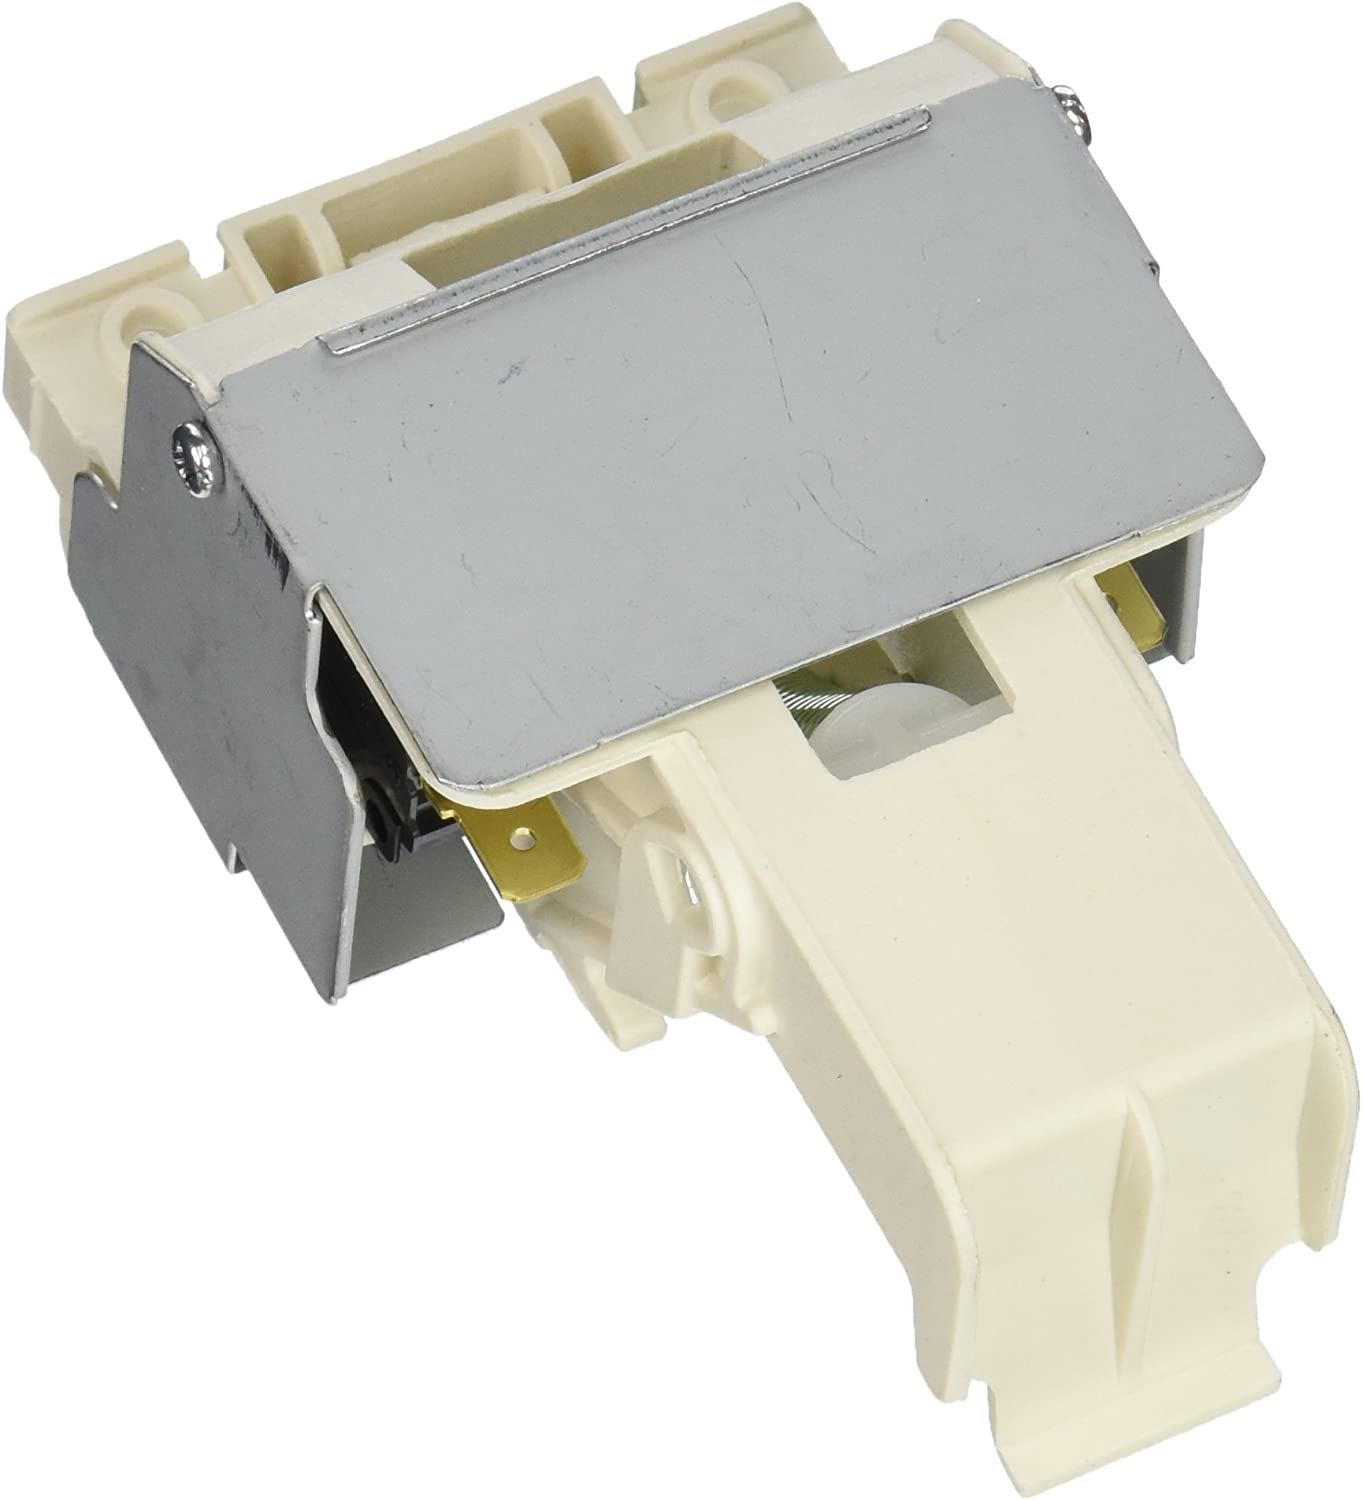 LG Electronics 4027ED3002A Dishwasher Door Latch